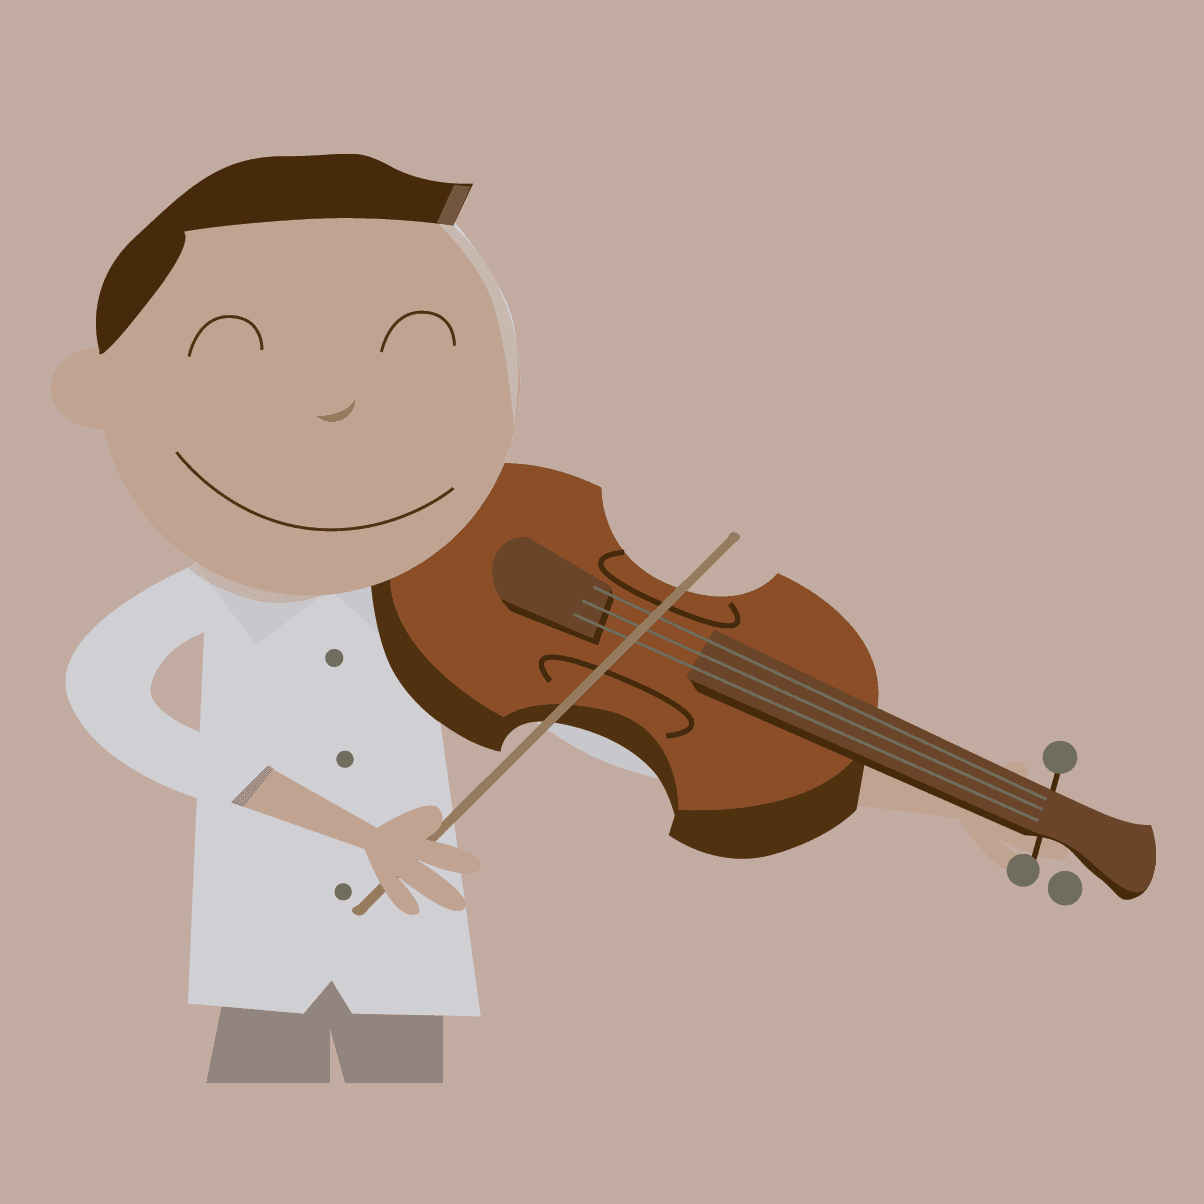 Cartoon image of a boy playing the violin.